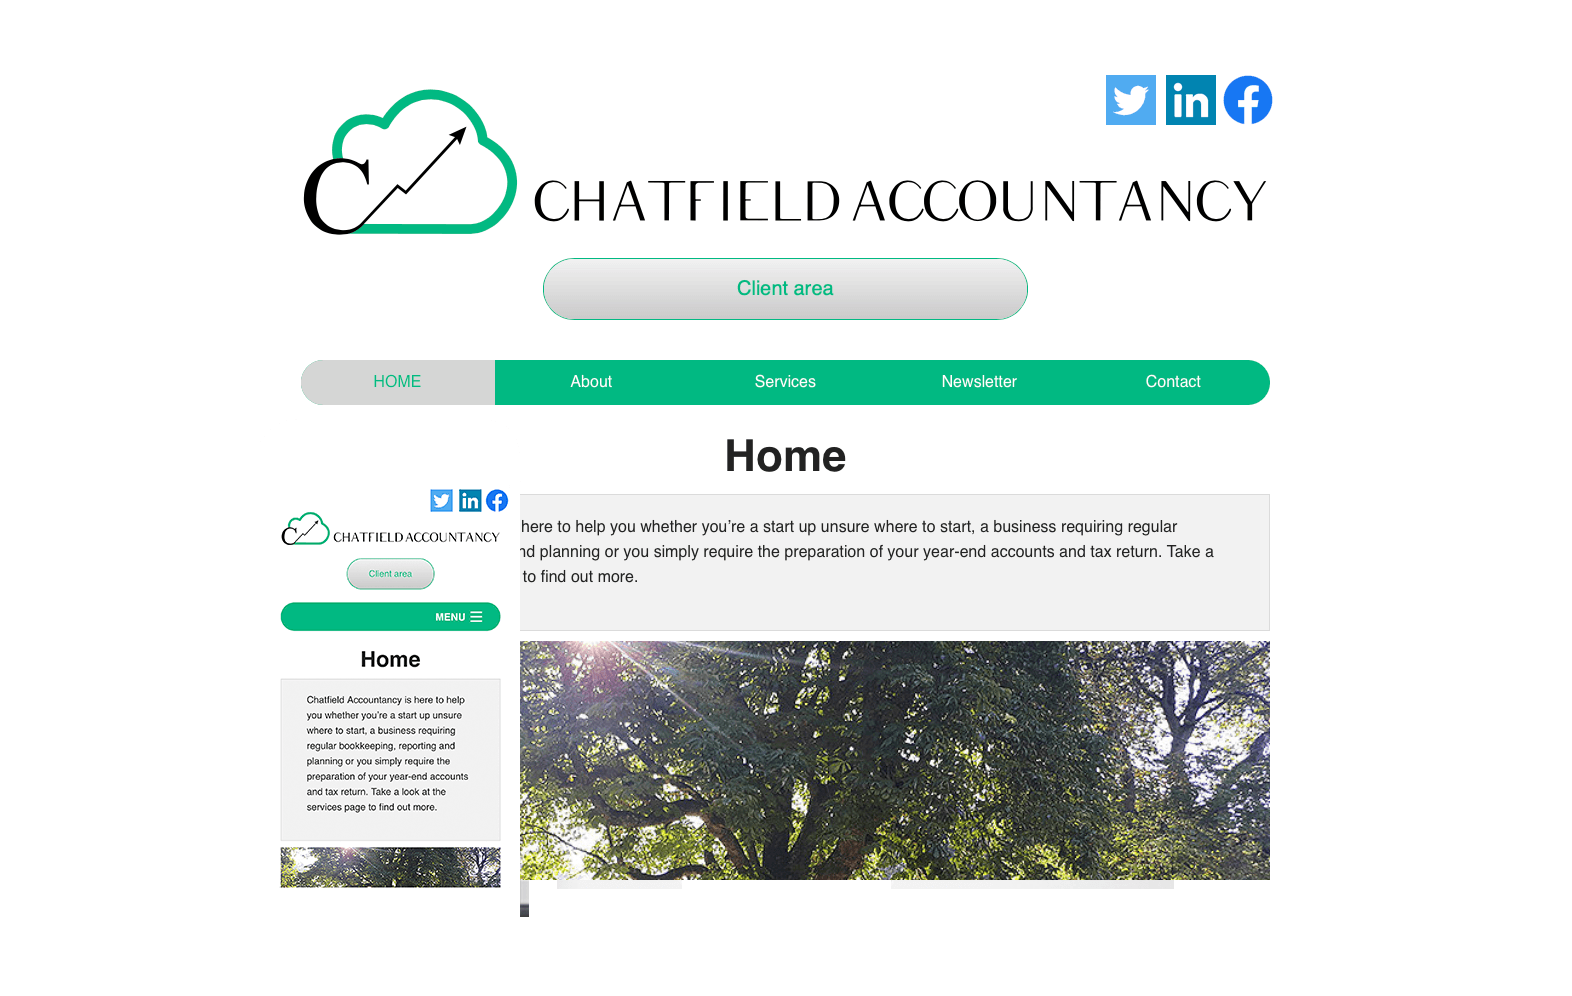 Chatfield Accountancy website image